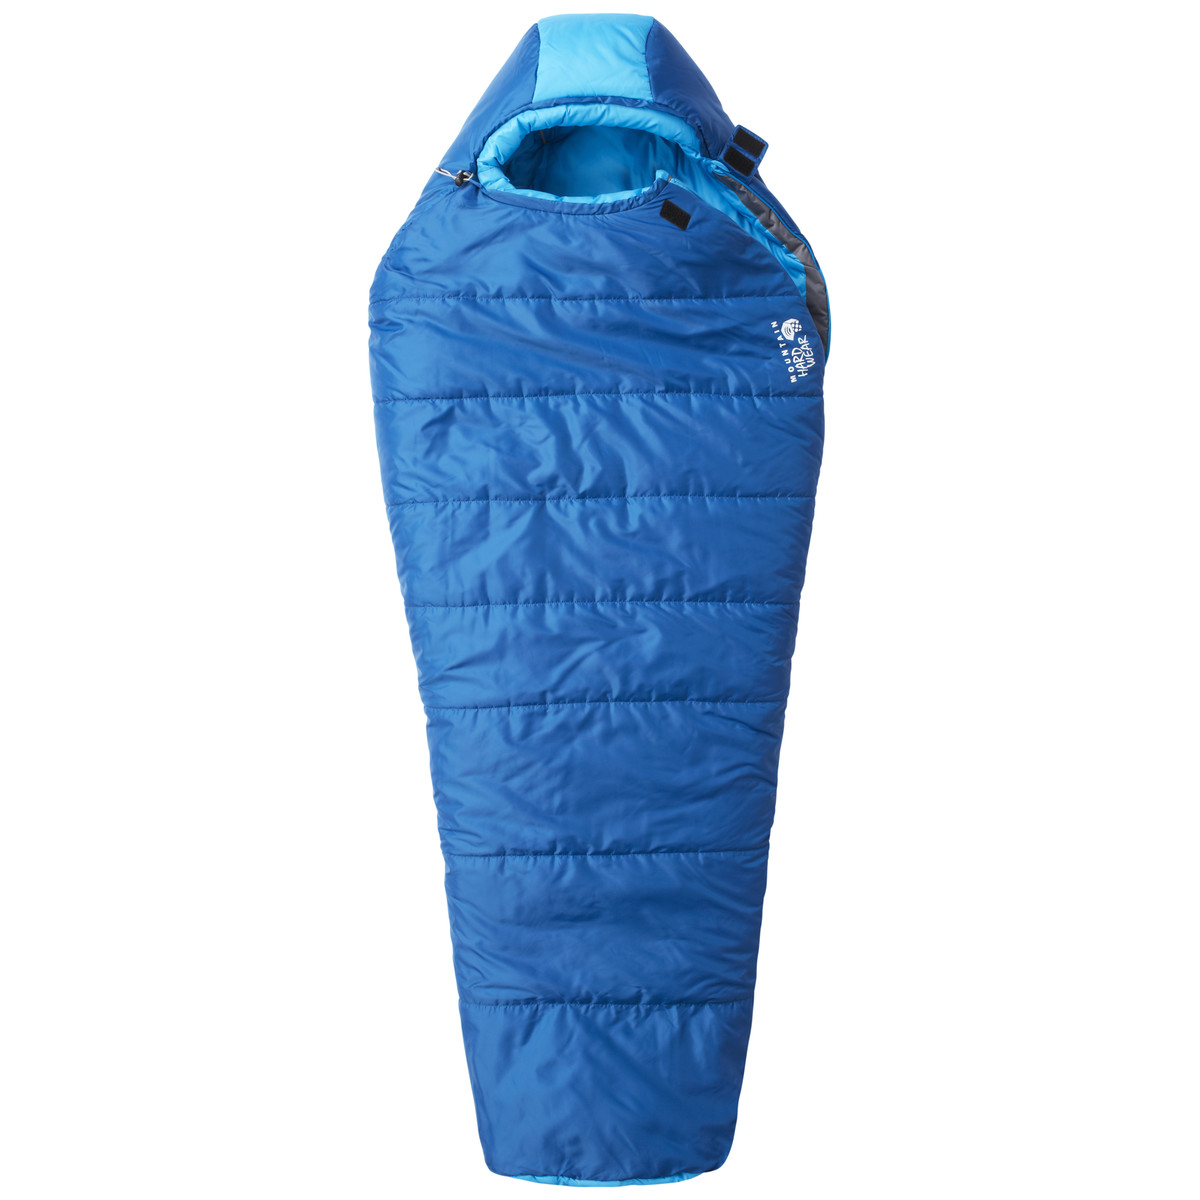 photo: Mountain Hardwear Women's Bozeman Flame 20 3-season synthetic sleeping bag